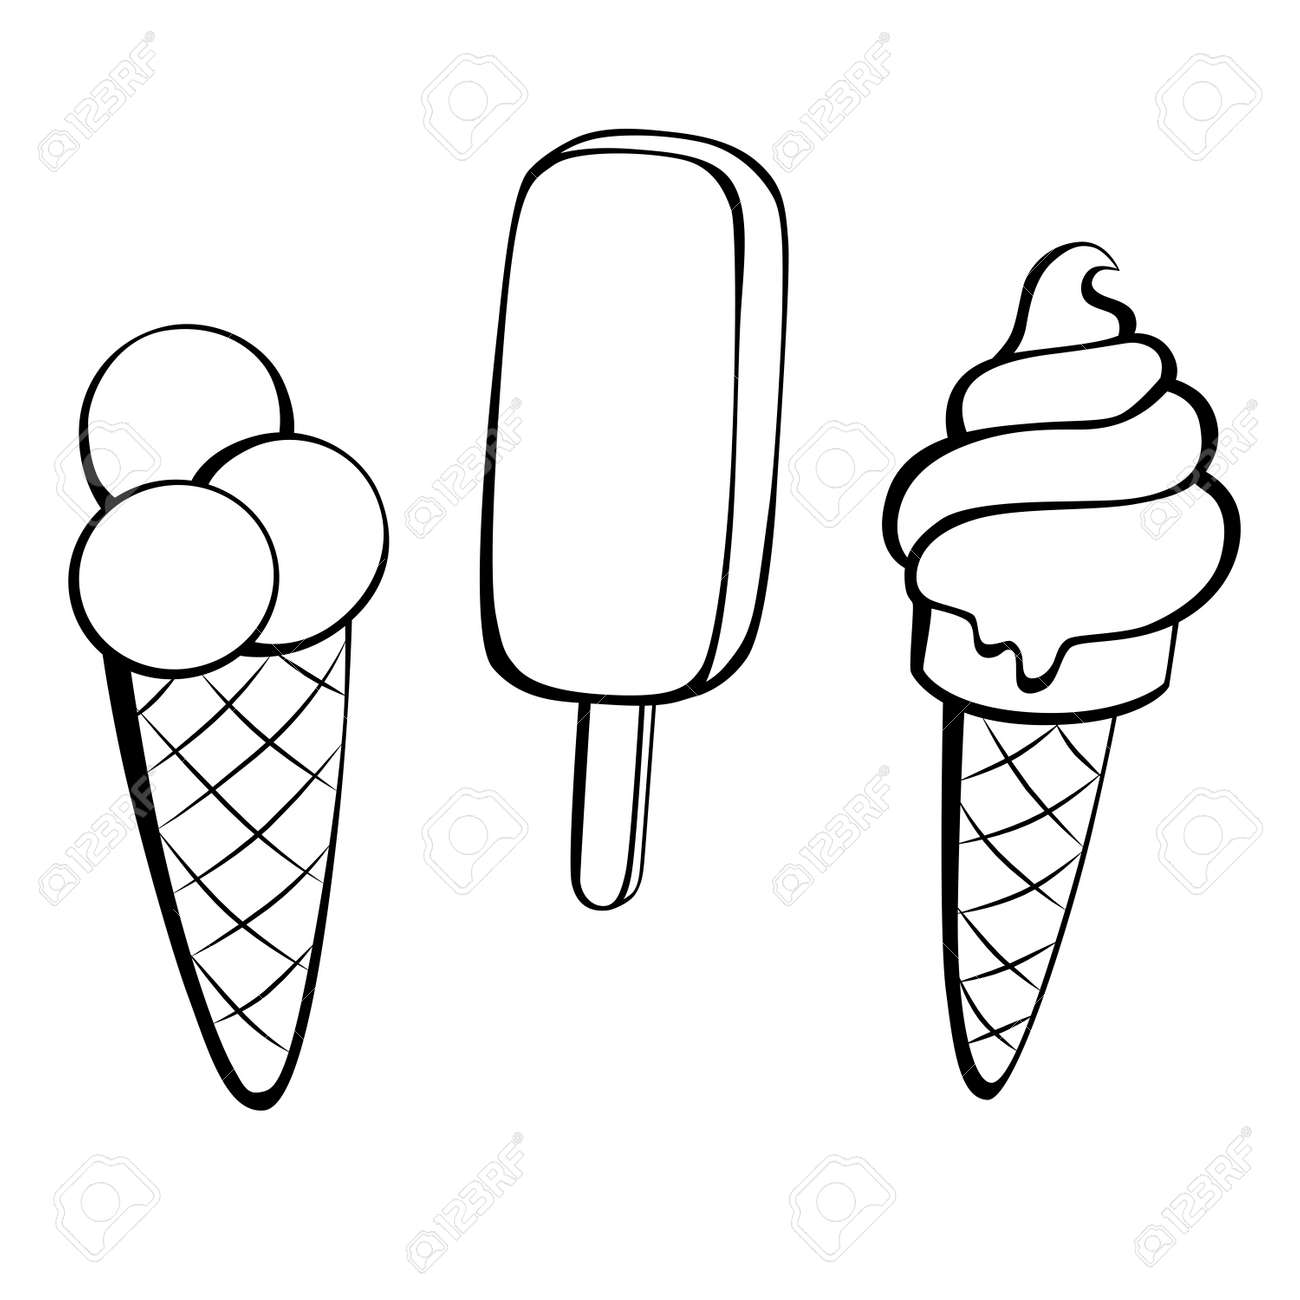 ice cream black white sweet food isolated illustration royalty free rh 123rf com ice cream cup clipart black and white ice cream sundae clipart black and white